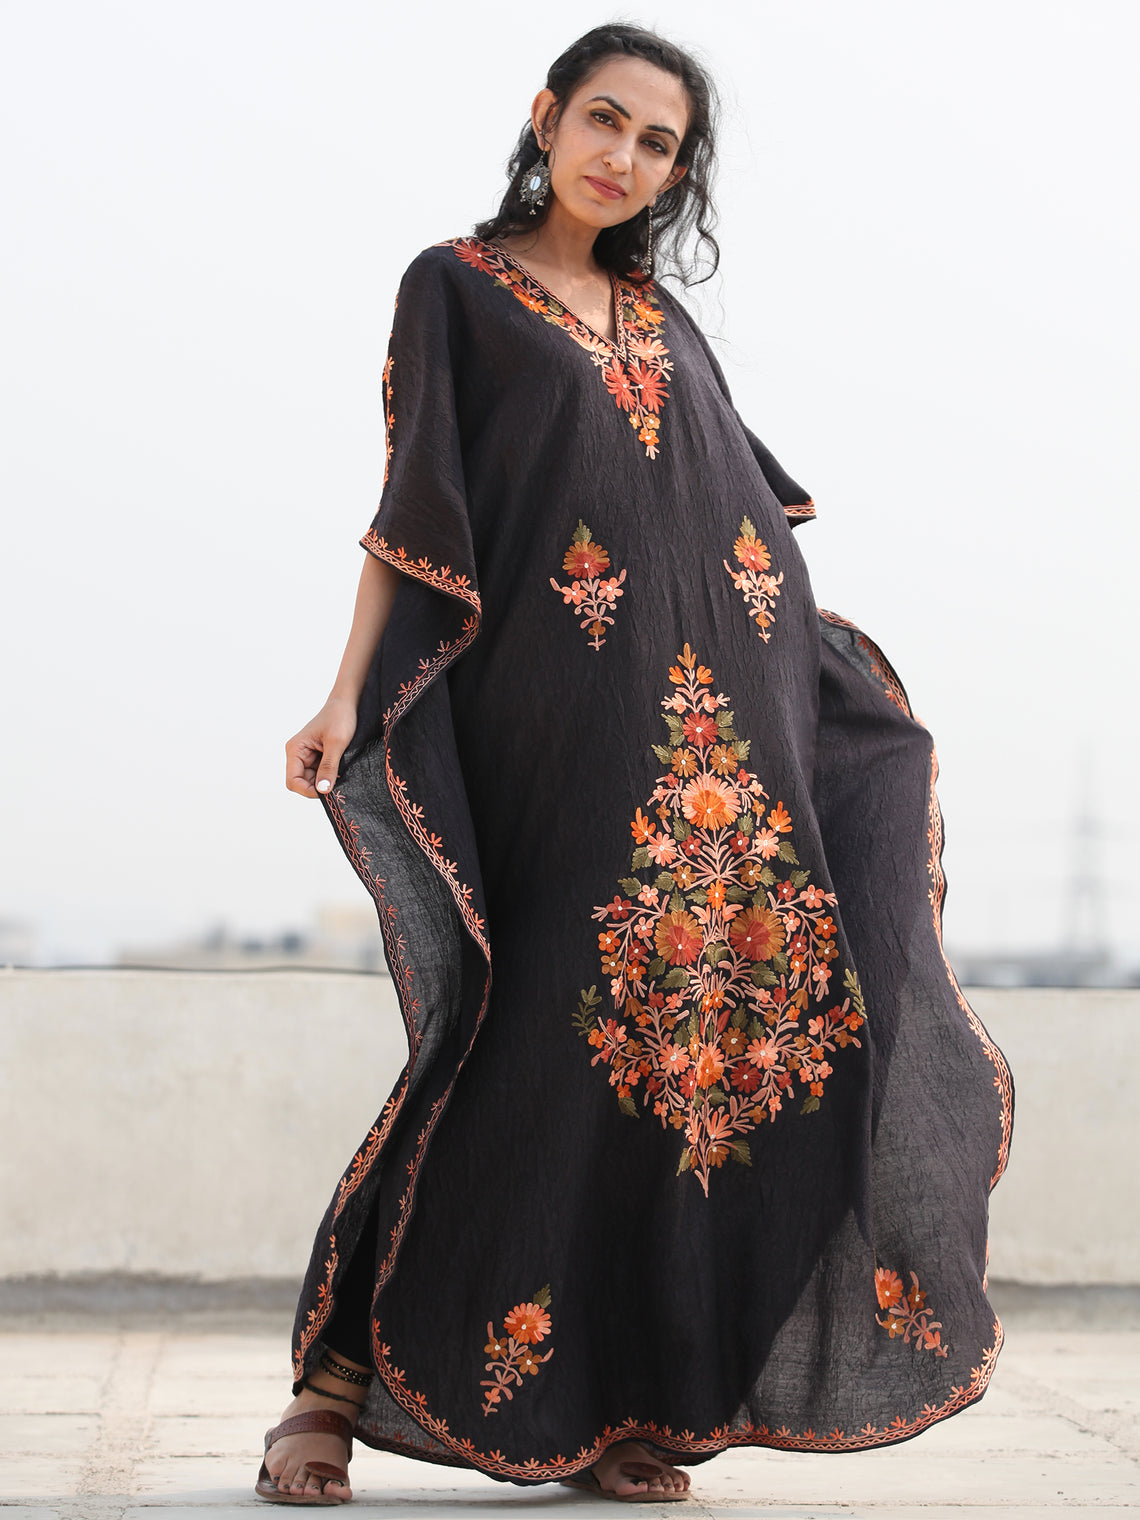 Black Aari Embroidered Kashmere Free Size Kaftan in Crushed Cotton - K11K068